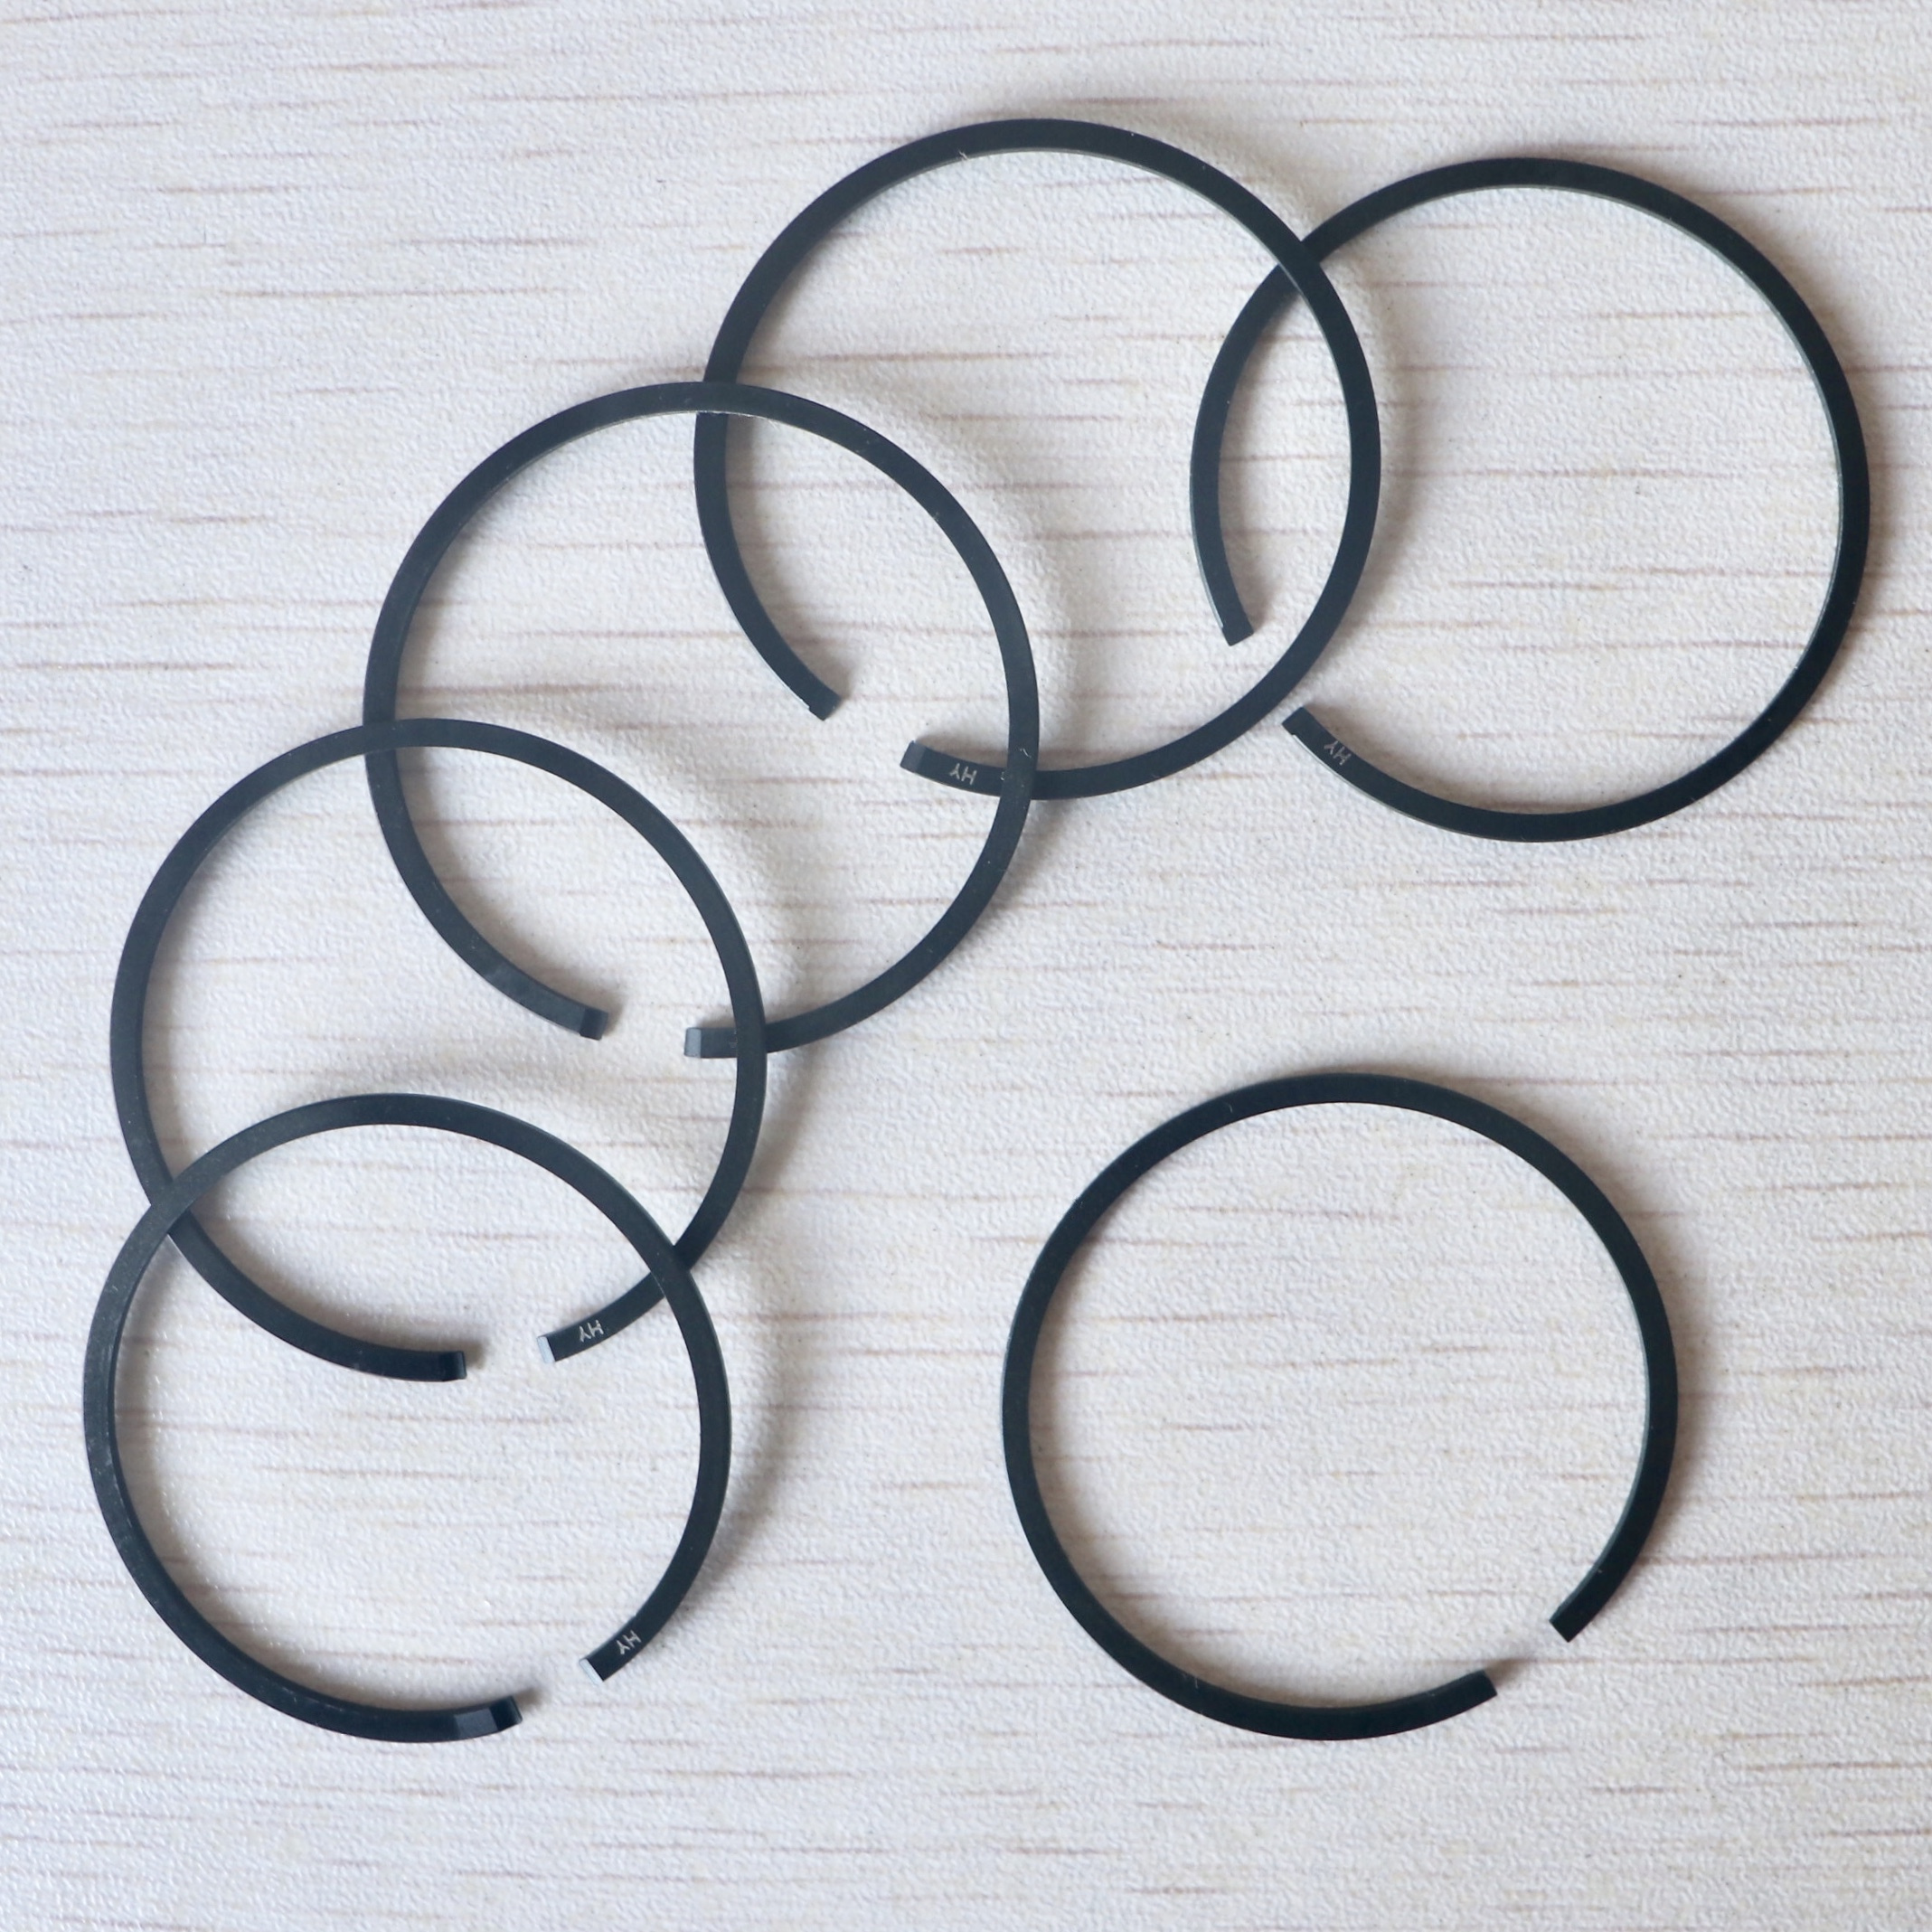 6Pcs 37mm Piston Rings For STIHL 017 MS170 MS 170 Chainsaw Replacement